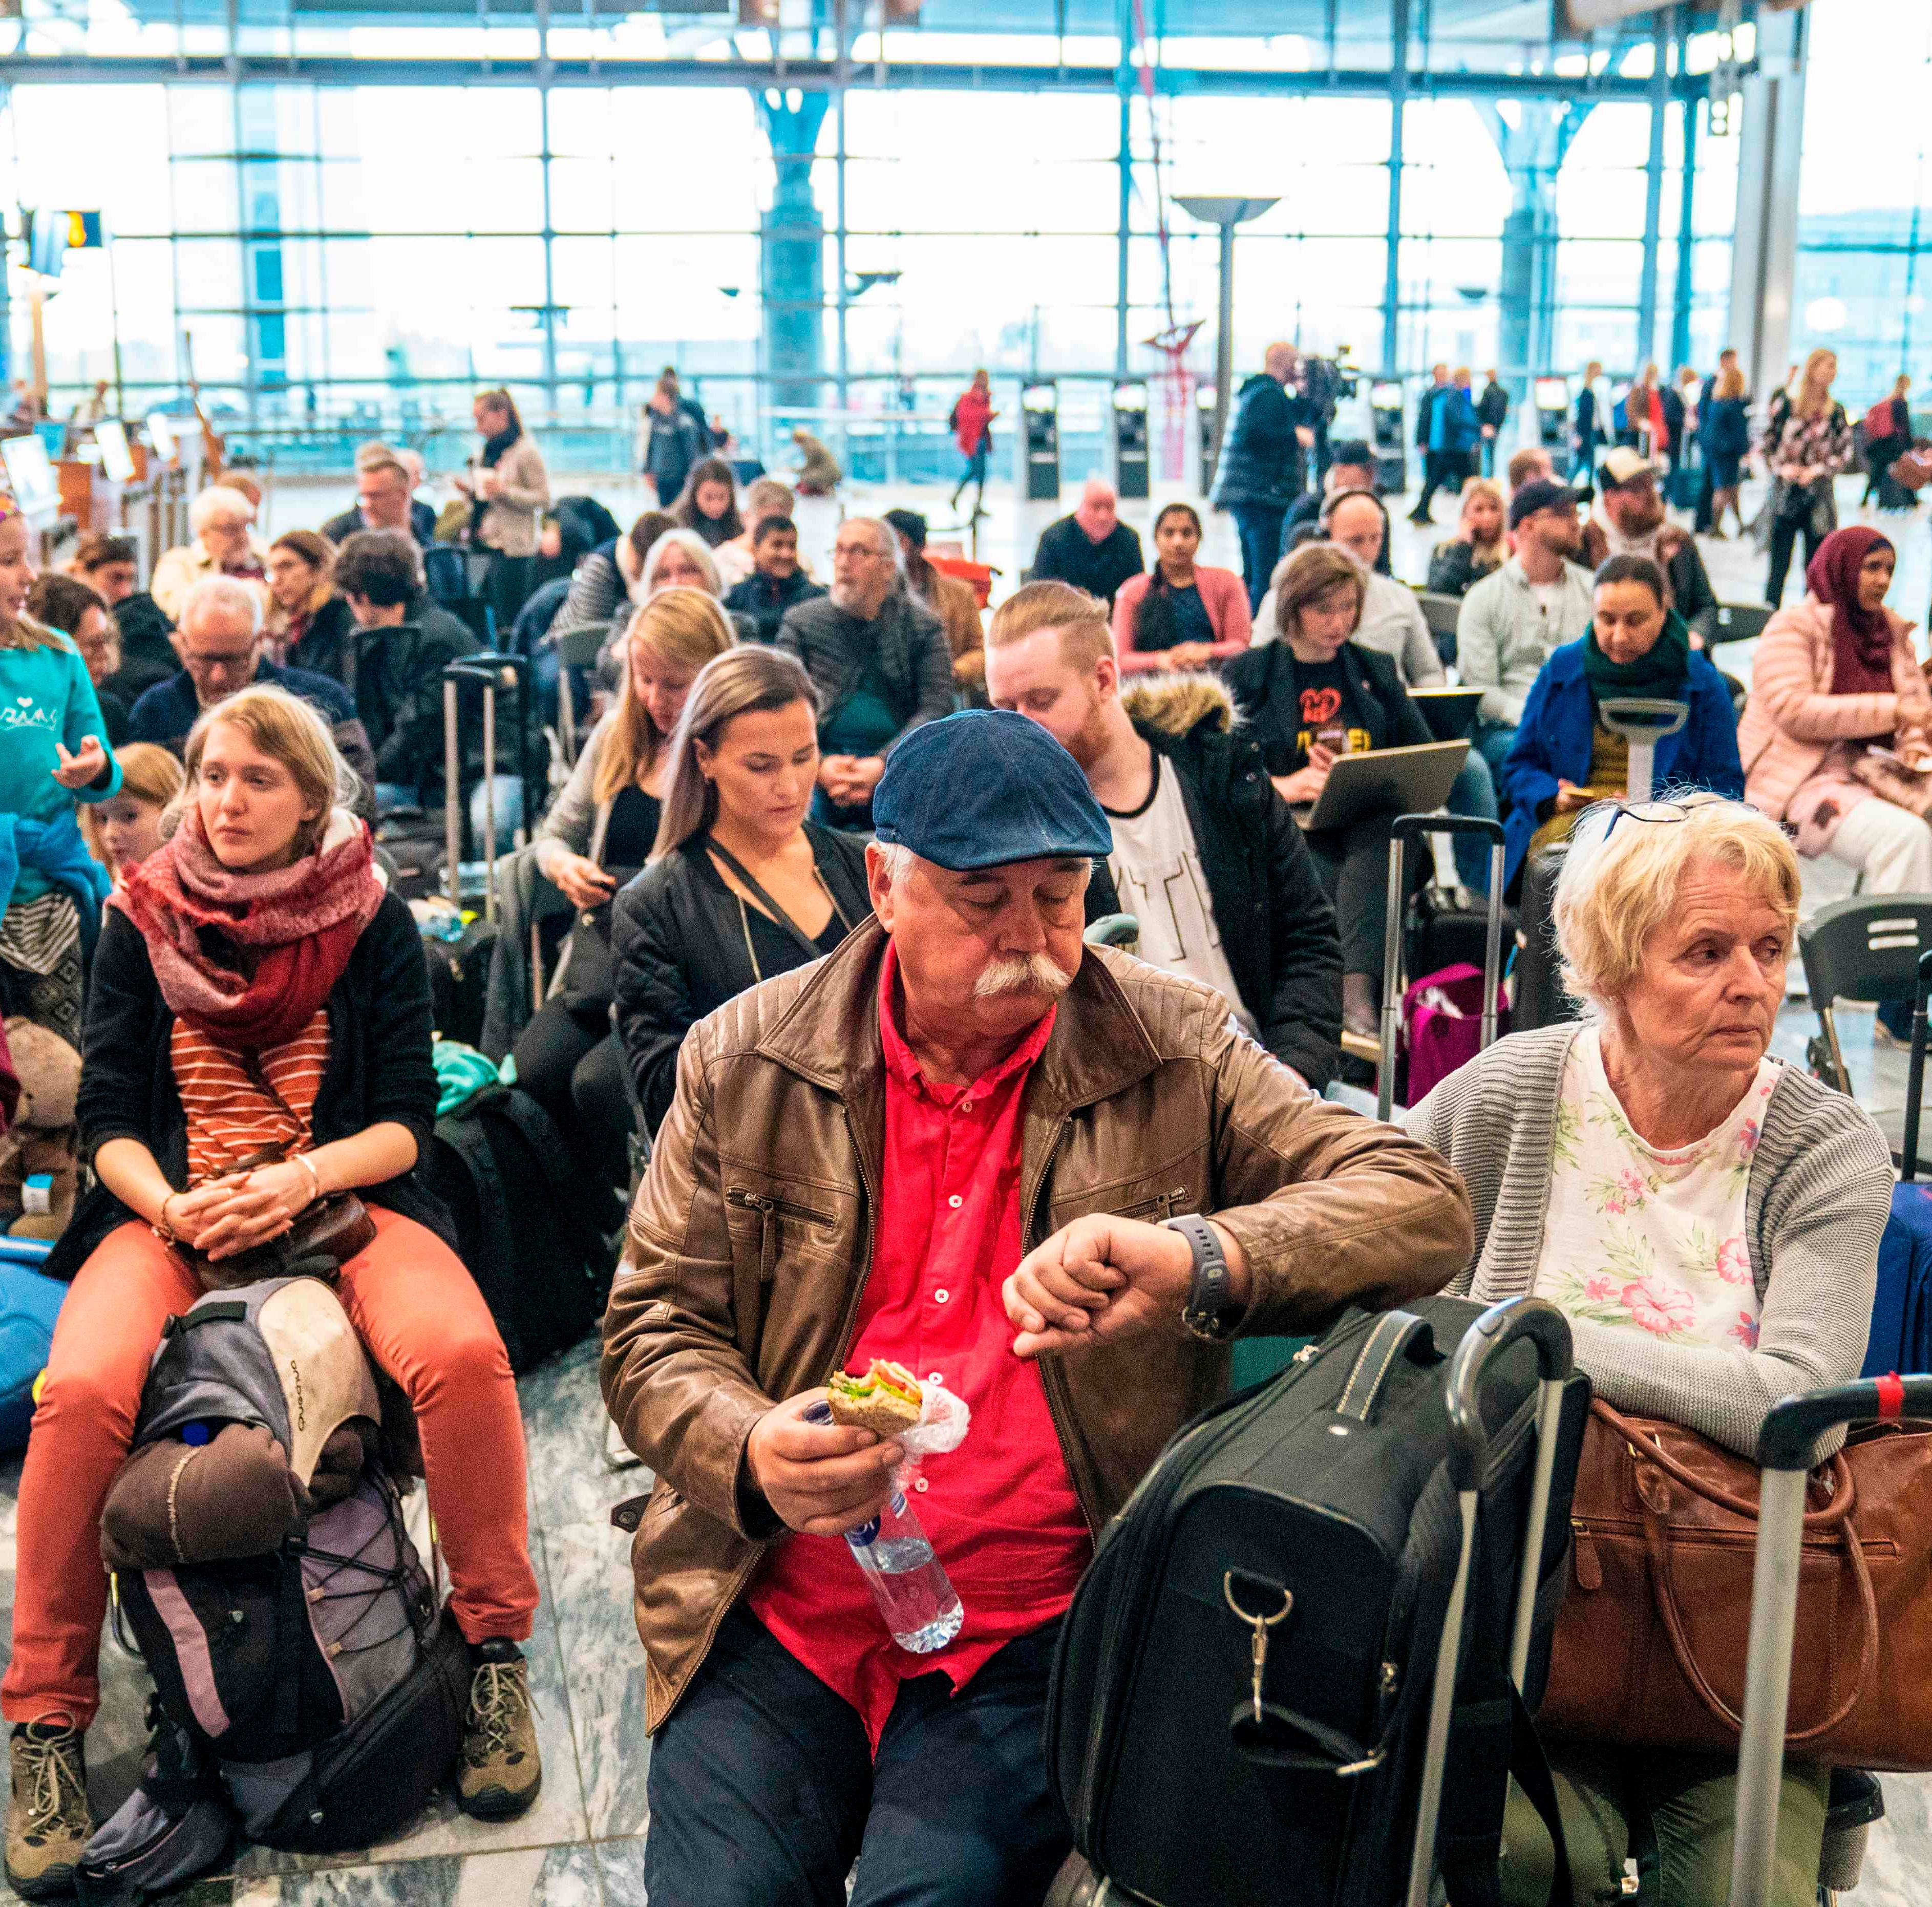 Travellers wait during a strike of Scandinavian Airlines' (SAS) pilots to contest wages and working hours on April 26, 2019 at the Gardamoen Airport in Oslo, Norway. - Pilots at SAS walked off the job in Sweden, Denmark and Norway, stranding 70,000 travellers as more than 300 flights were cancelled, the airline said. Domestic, European and long-haul flights were all affected by the strike, it  said, predicting that a total of 170,000 passengers would be affected through April 28, 2019. (Photo by Ole Berg-Rusten / NTB Scanpix / AFP) / Norway OUTOLE BERG-RUSTEN/AFP/Getty Images ORIG FILE ID: AFP_1FY2TE